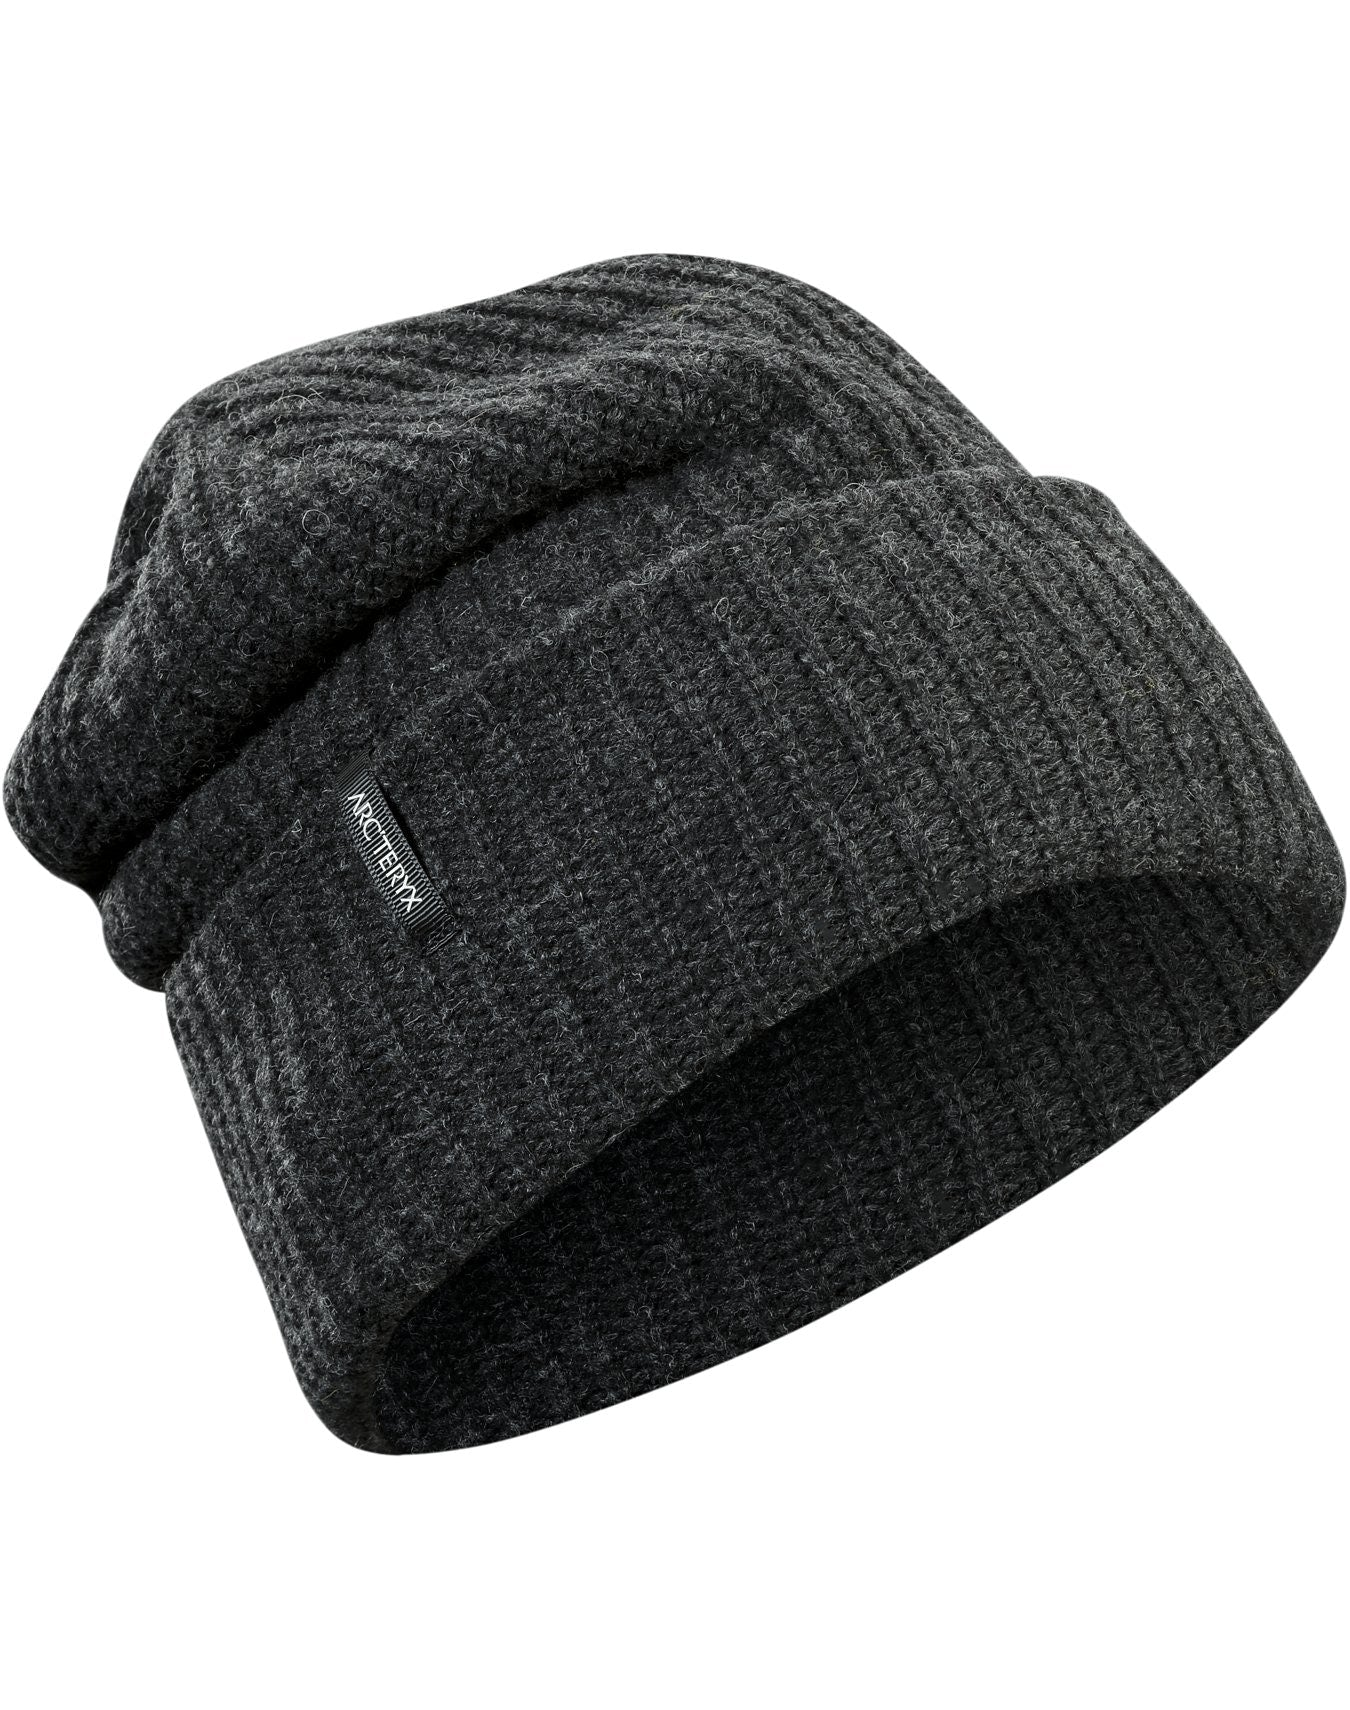 ARC'TERYX TOQUES BLACK HEATHER O/S CHUNKY KNIT TOQUE